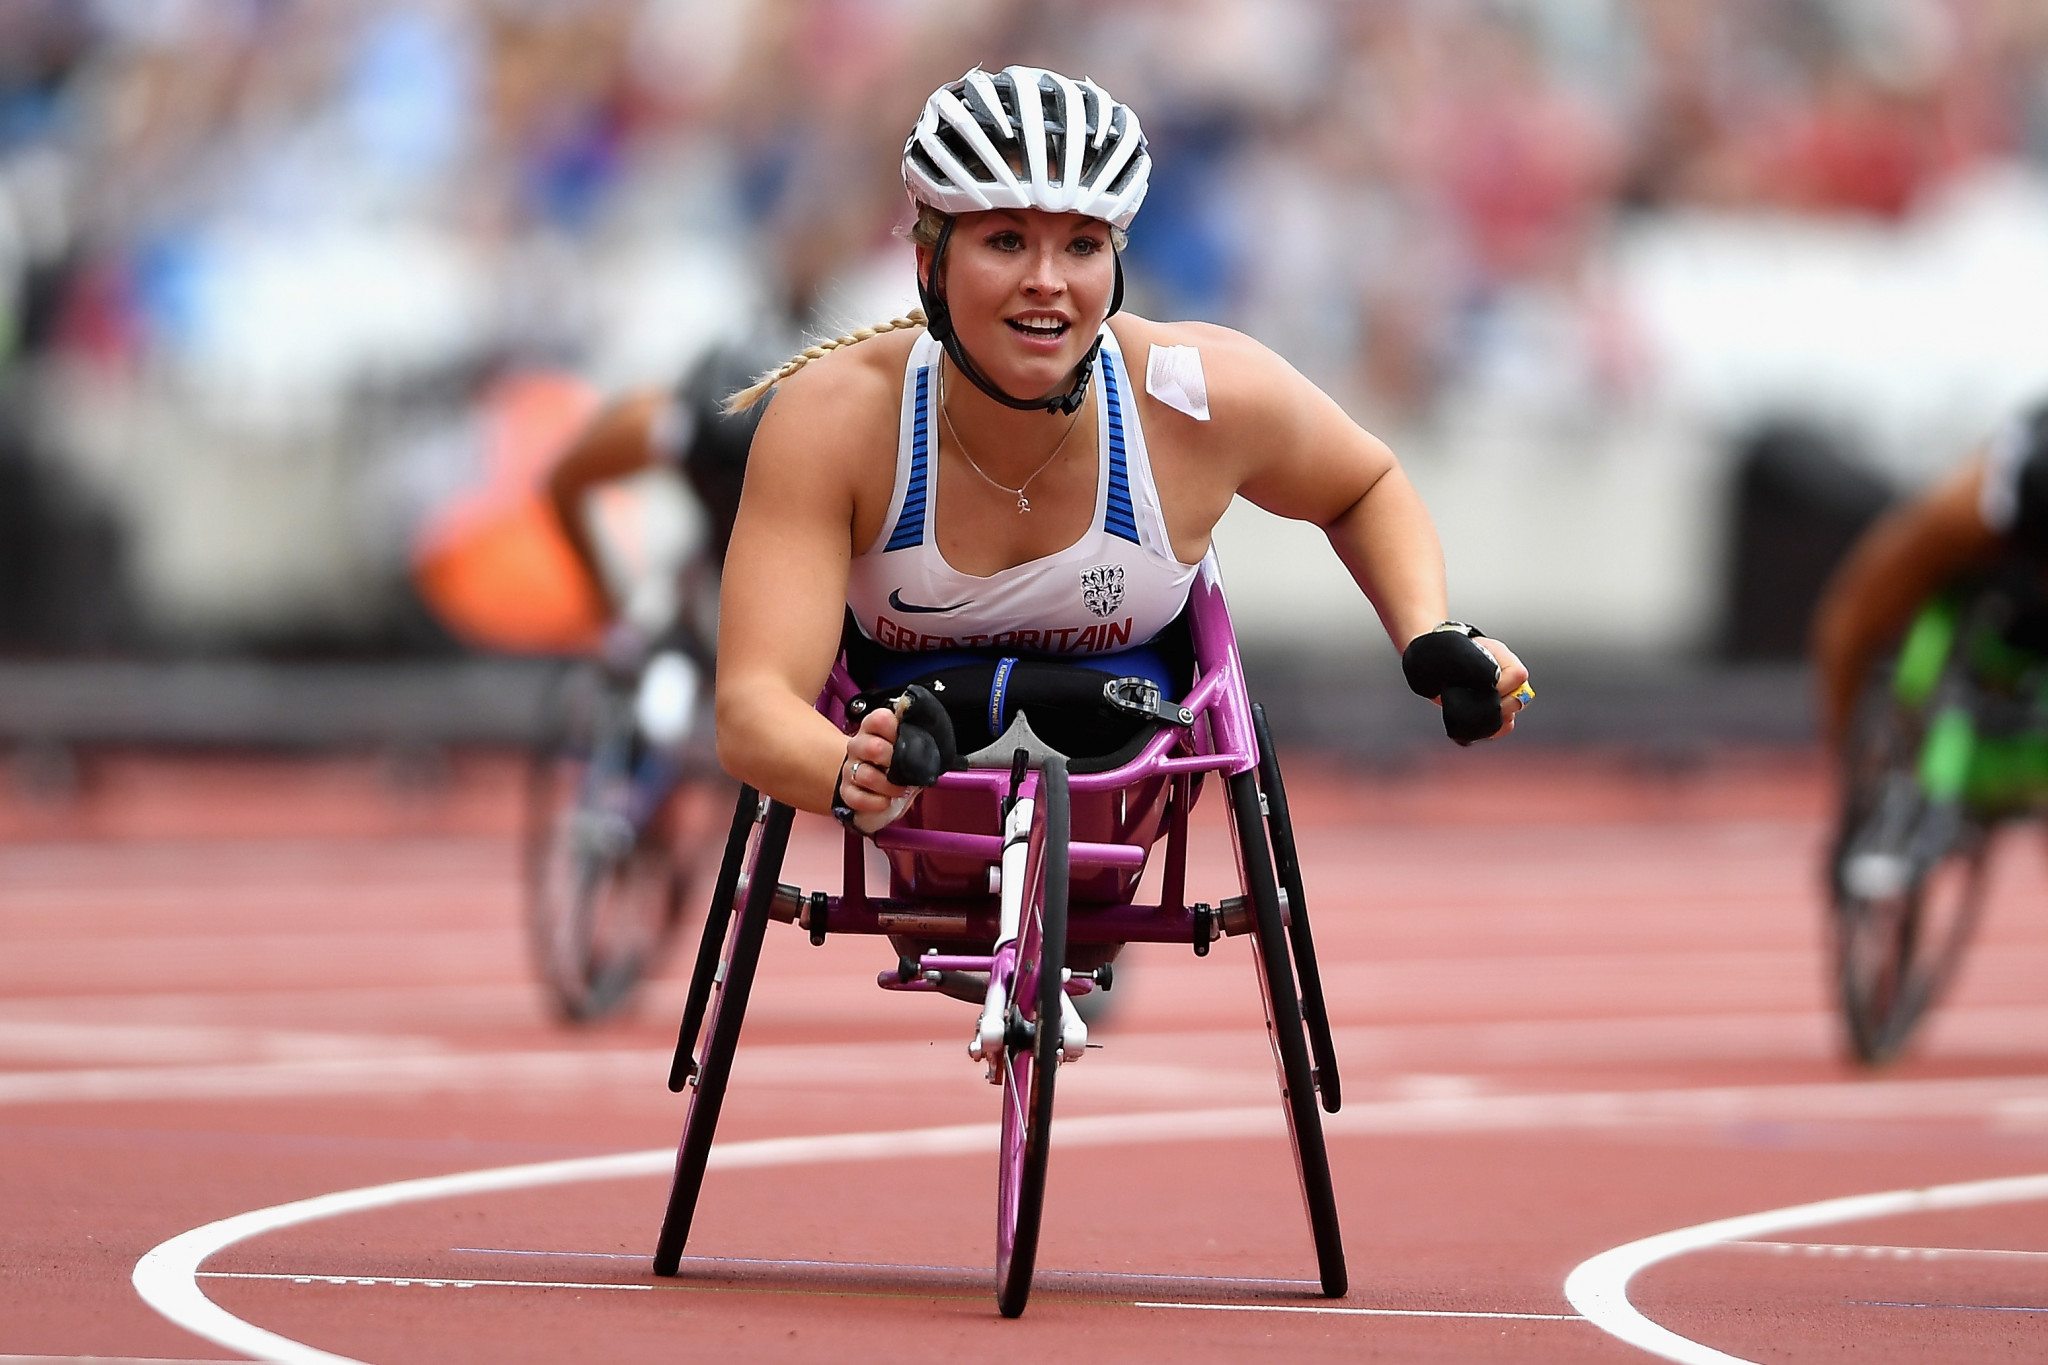 Kinghorn completes hat-trick of victories at World Para Athletics Grand Prix